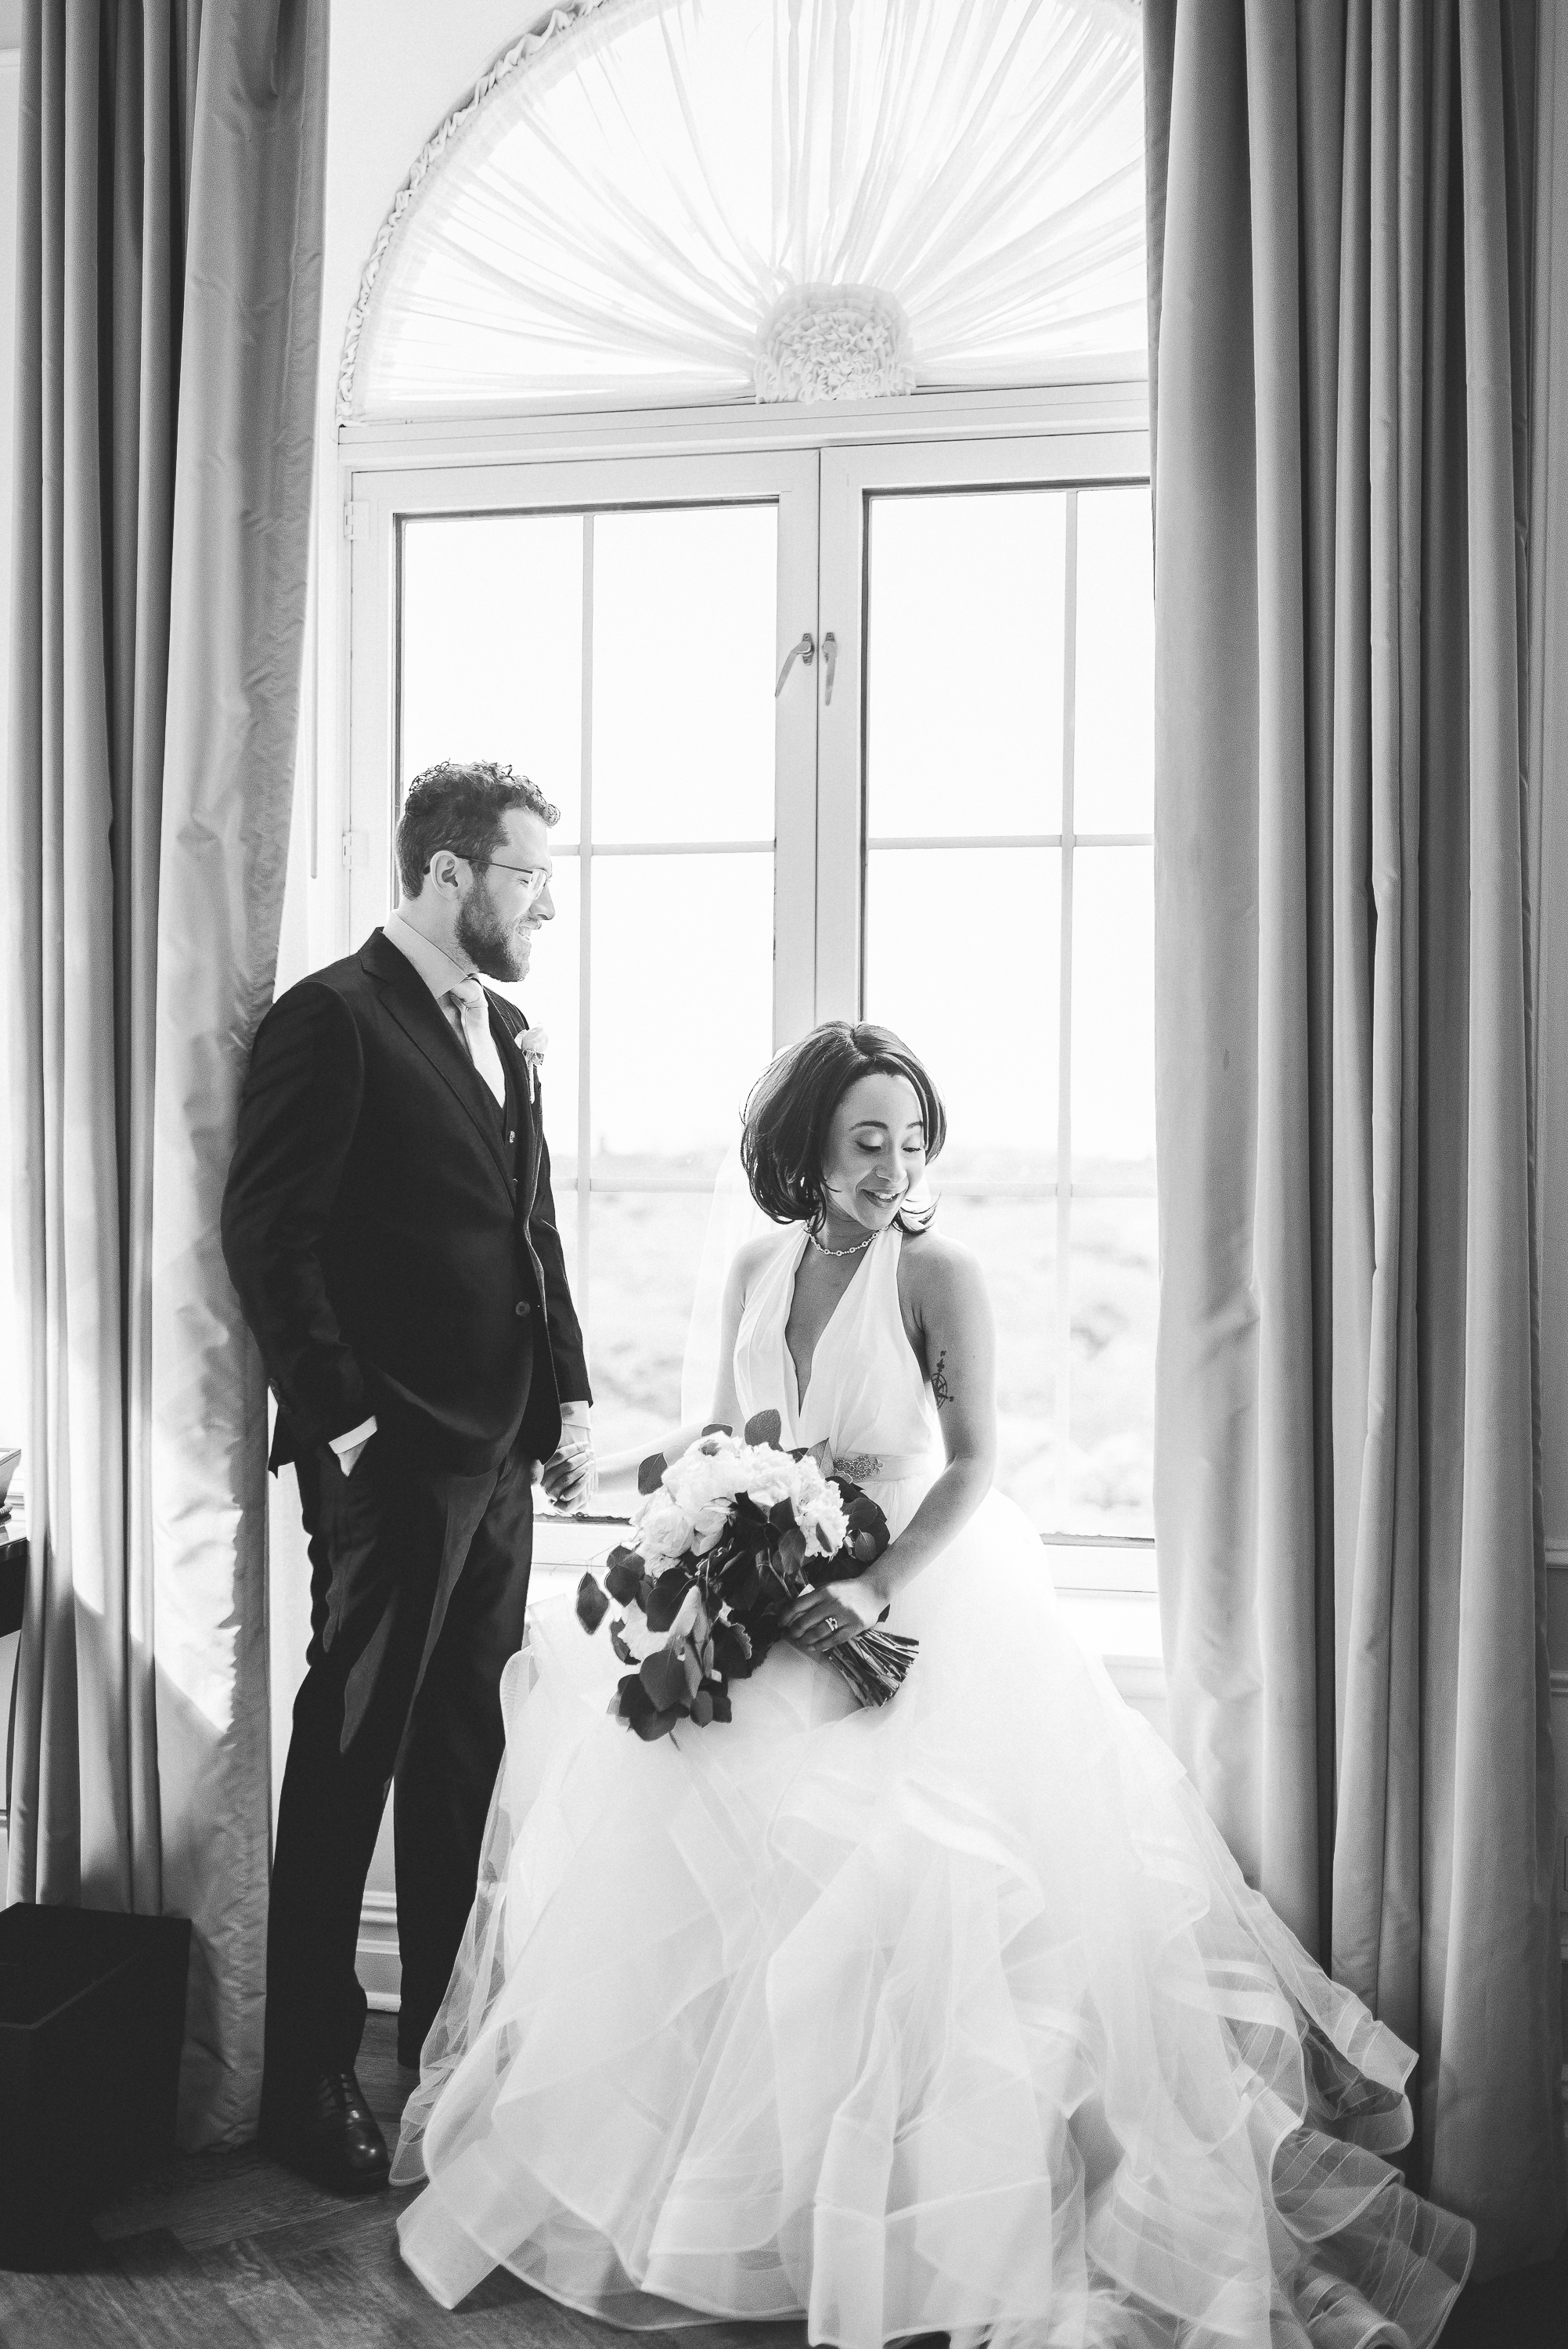 Bride and groom in Plaza Hotel Suite Picture Window NYC wedding inspiration black and white